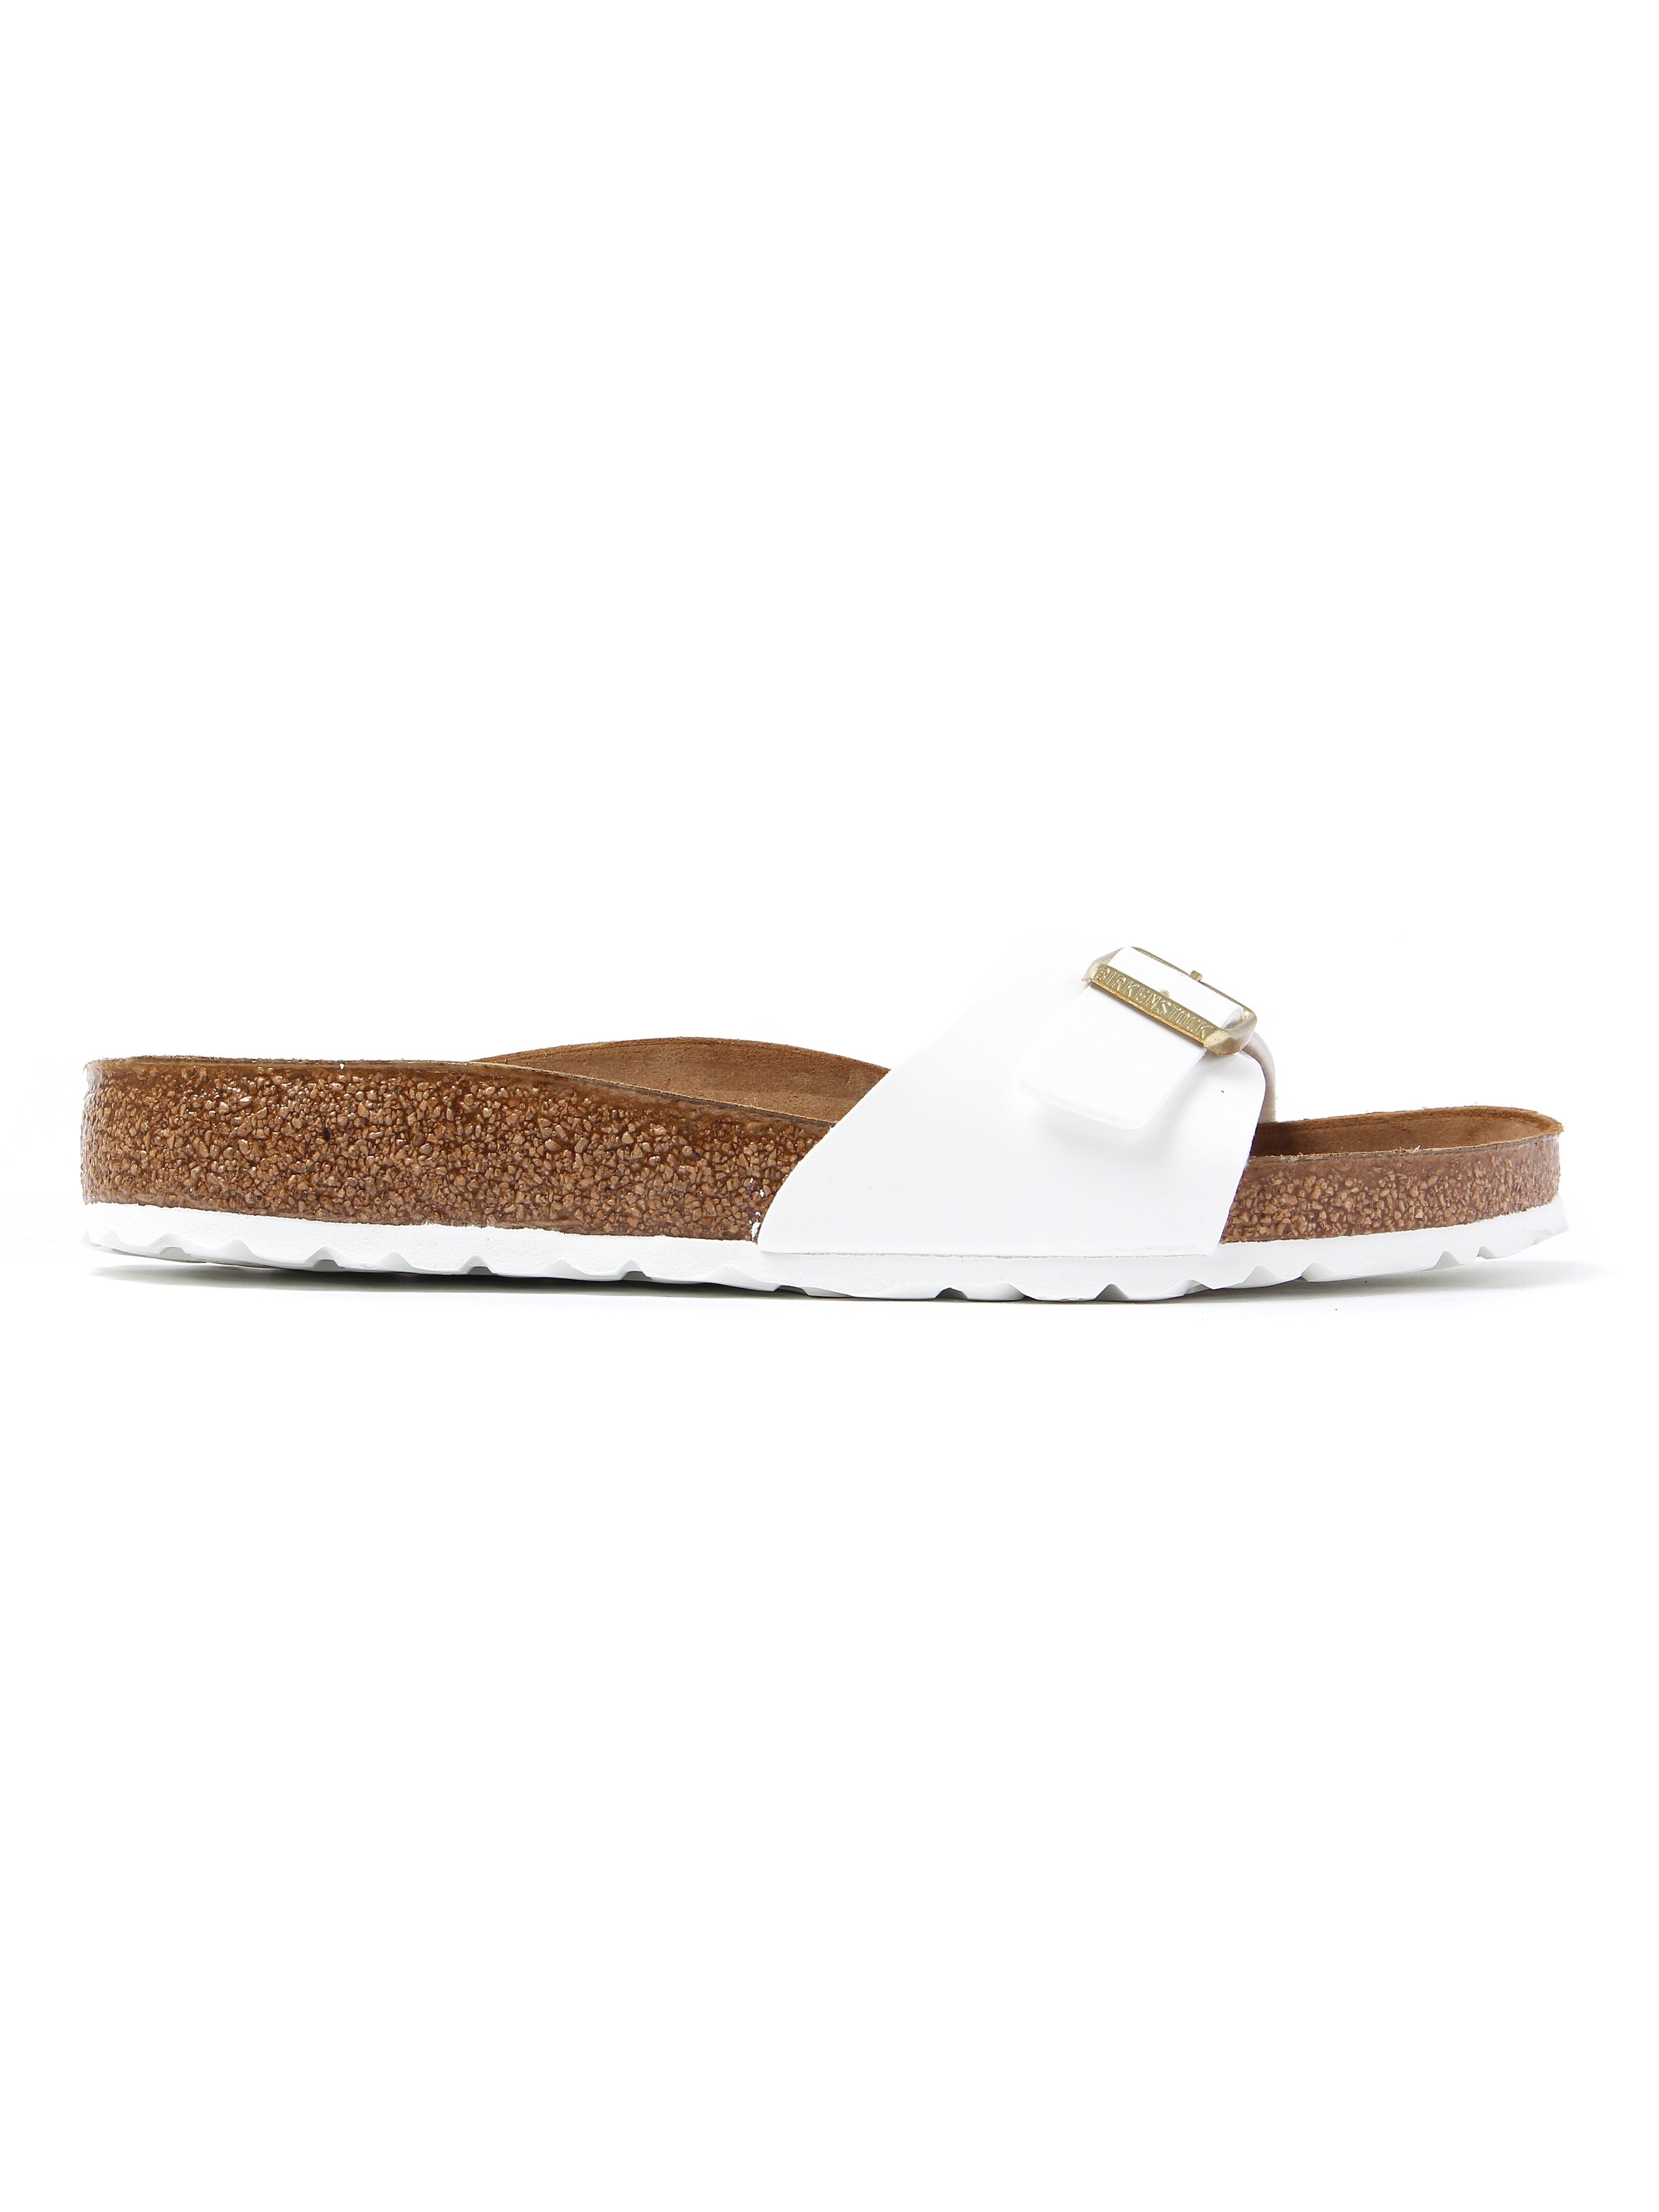 Birkenstock Women's Madrid Regular Fit Sandals - White Patent